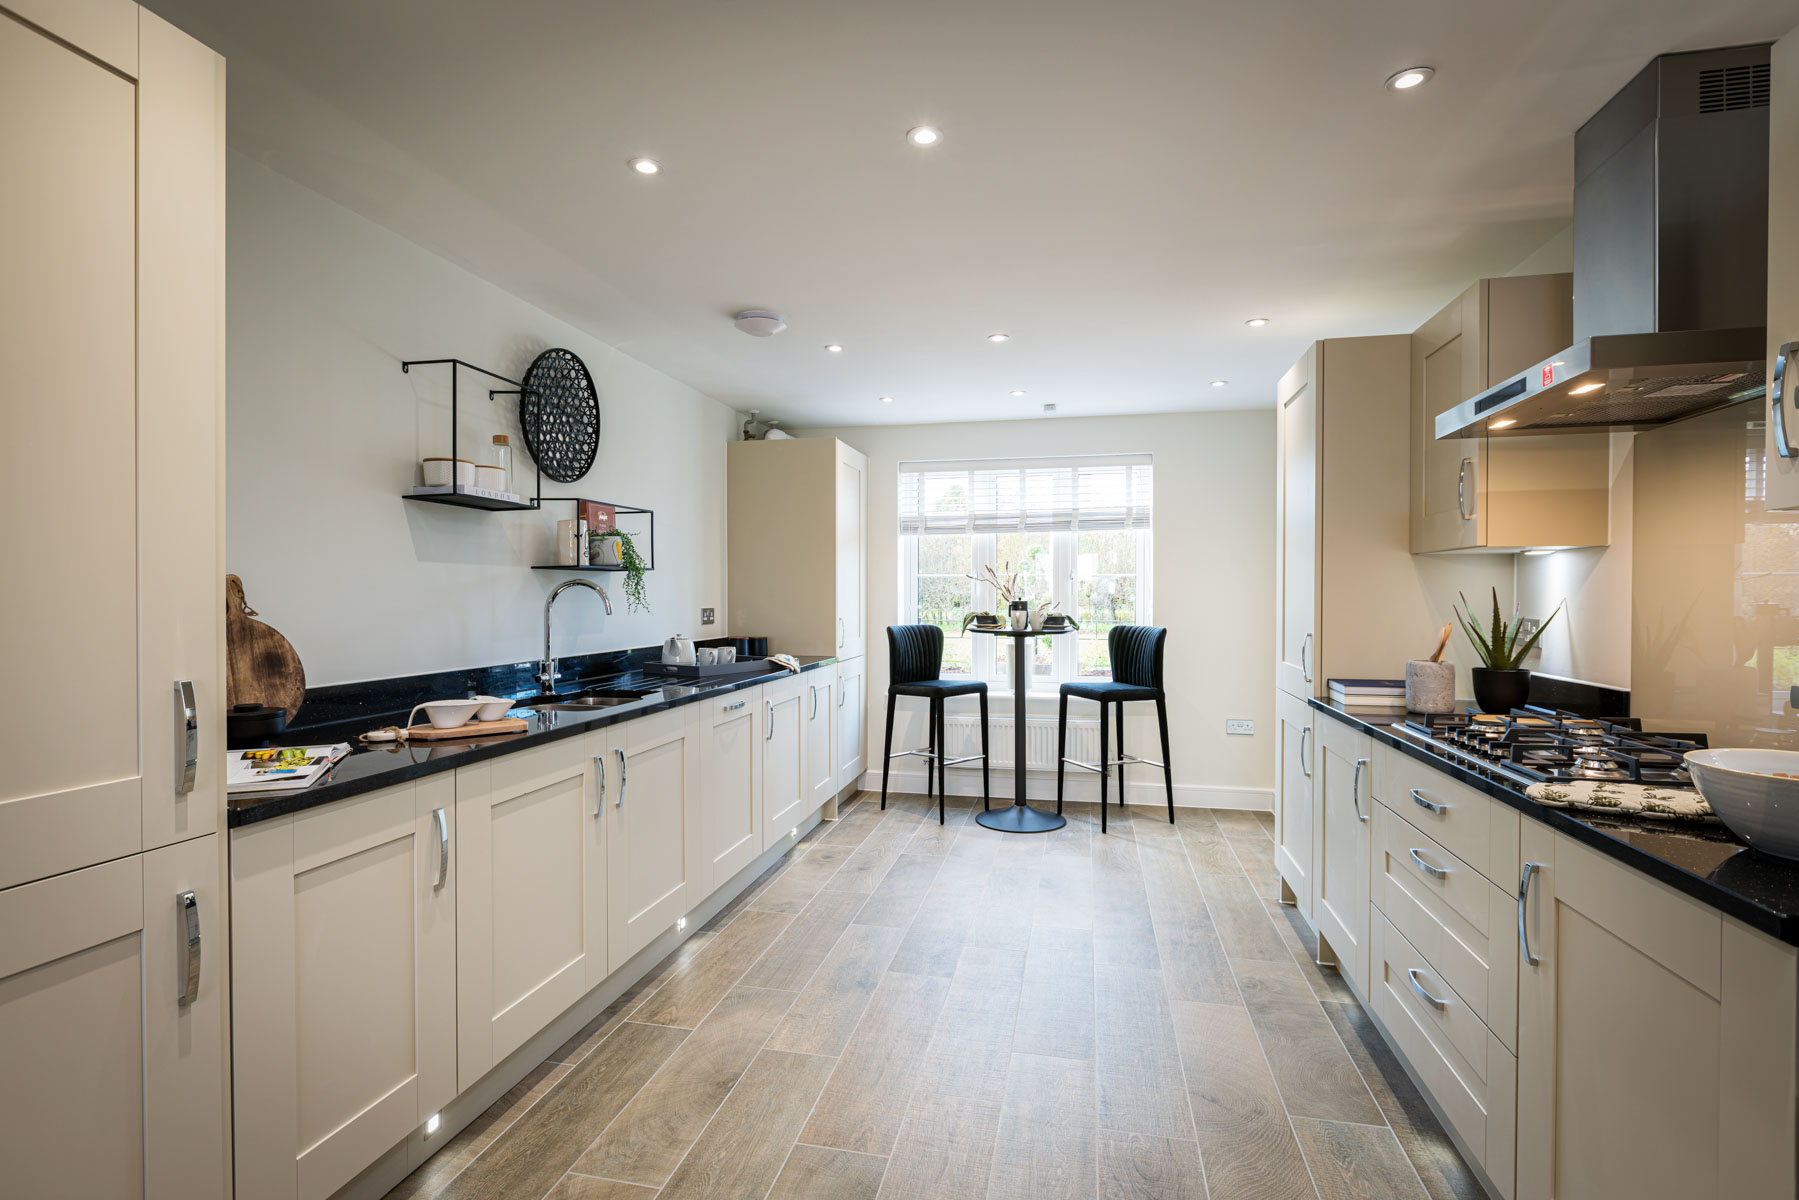 Bampton_Meadows_Marford_Kitchen2_Web_1800x1200